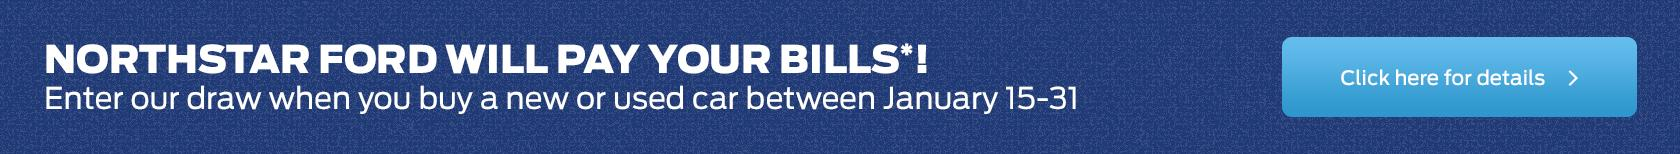 Northstar Ford Will Pay Your Bills!